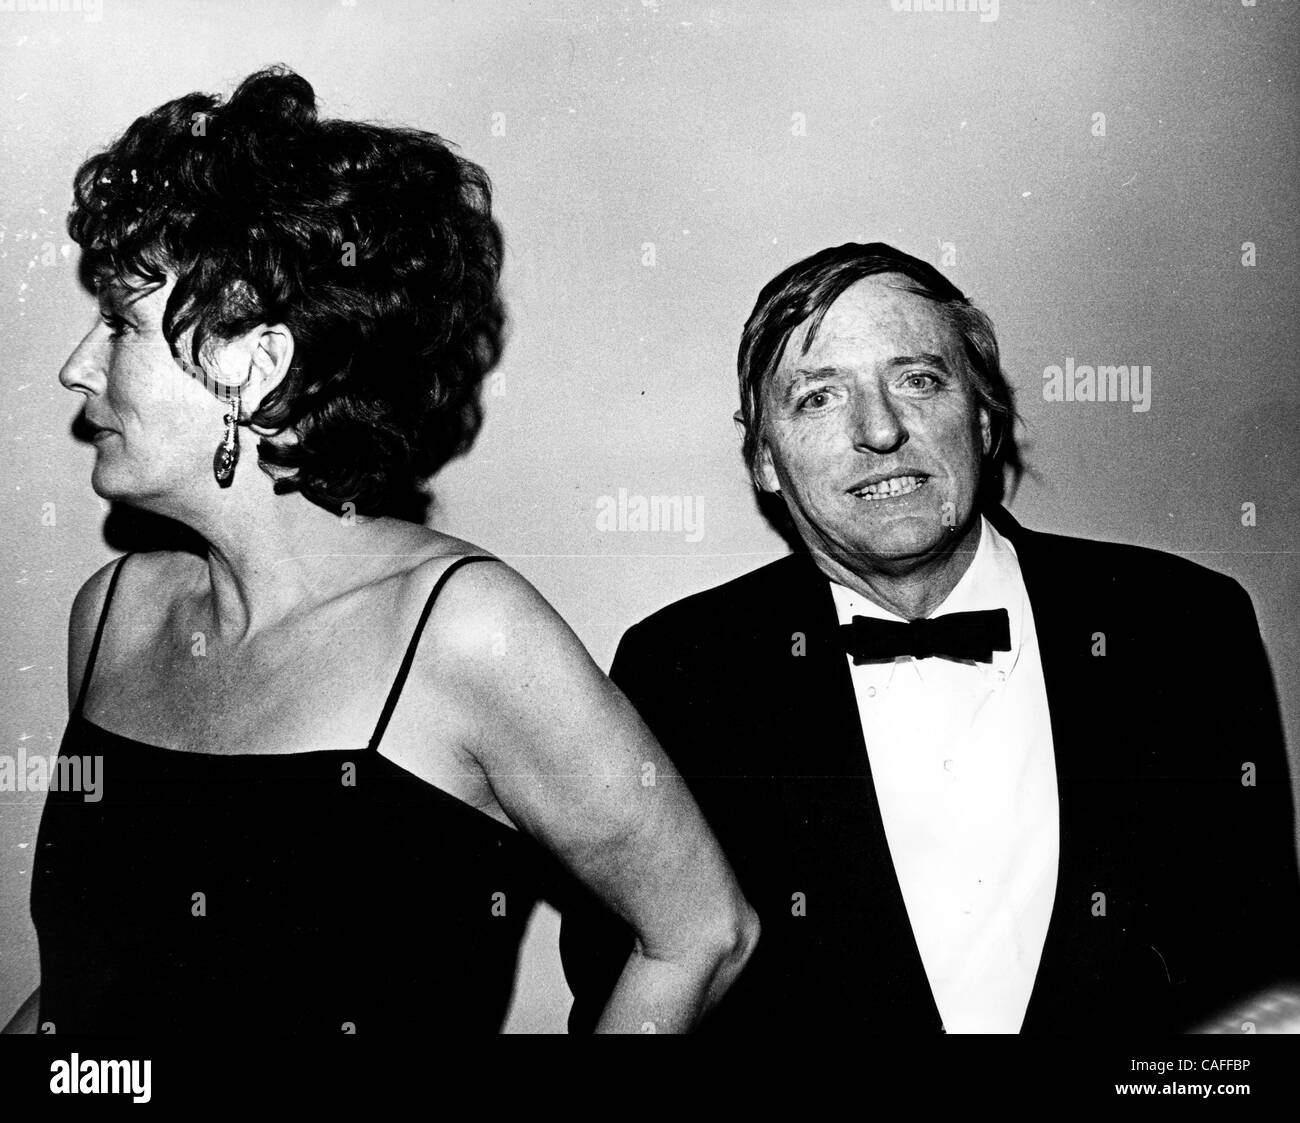 Feb 26, 2008 - New York, NY, USA - FILE: Dec 14, 1973; New York, NY, USA; American author WILLIAM BUCKLEY and his - Stock Image